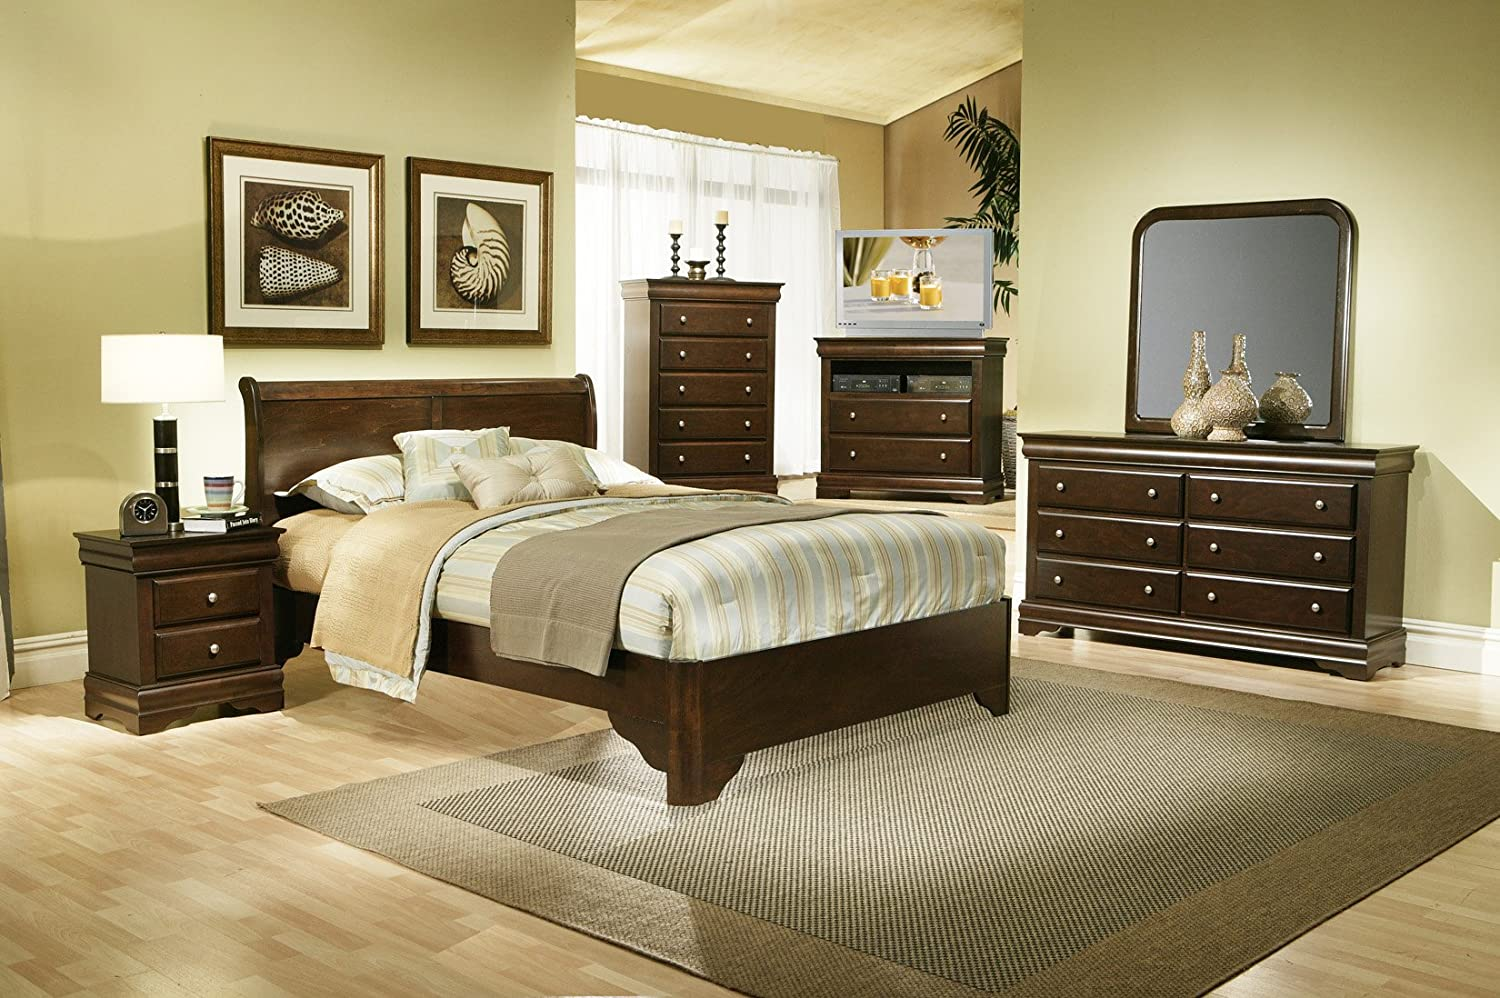 Alpine Furniture 5 Piece Chesapeake Sleigh Bed Set with Media Chest - Queen - Cappuccino